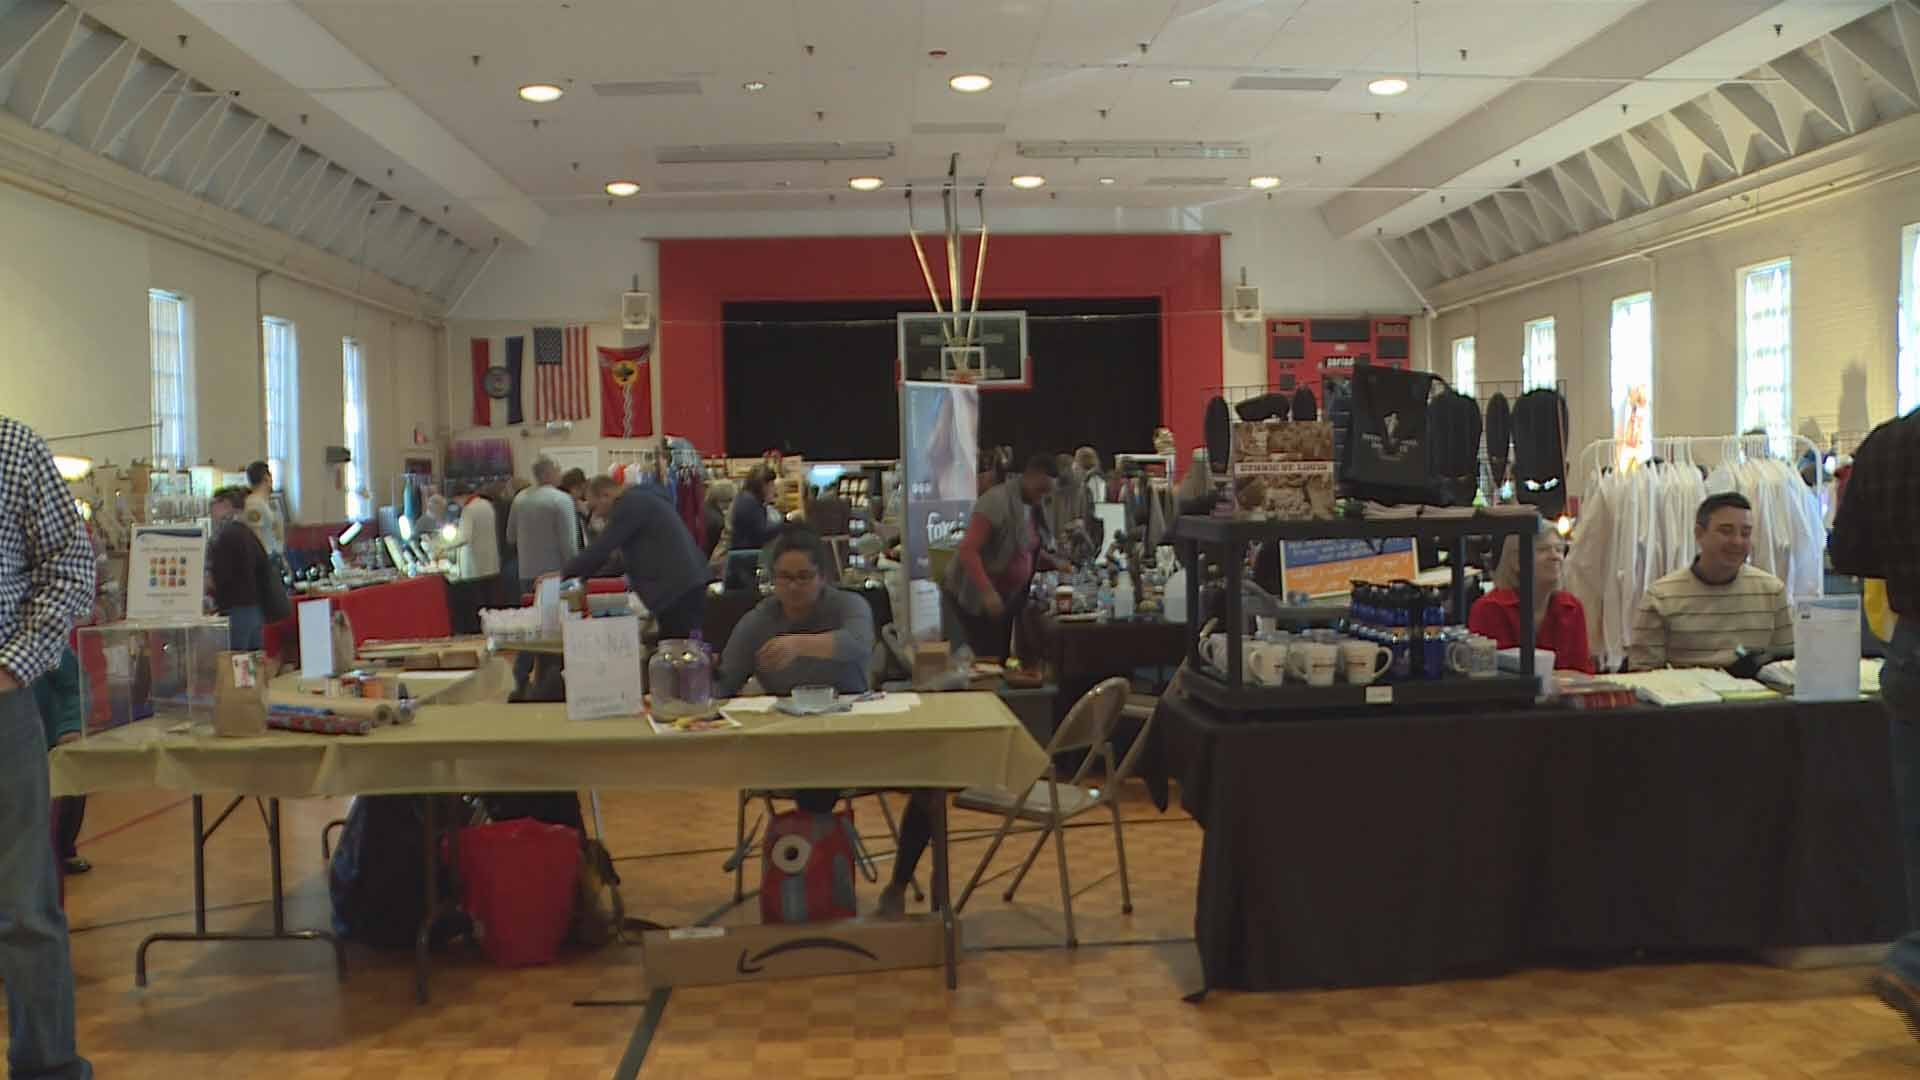 The International Institute of St. Louis hosts their 3rd annual Holiday Bazaar. Credit: KMOV